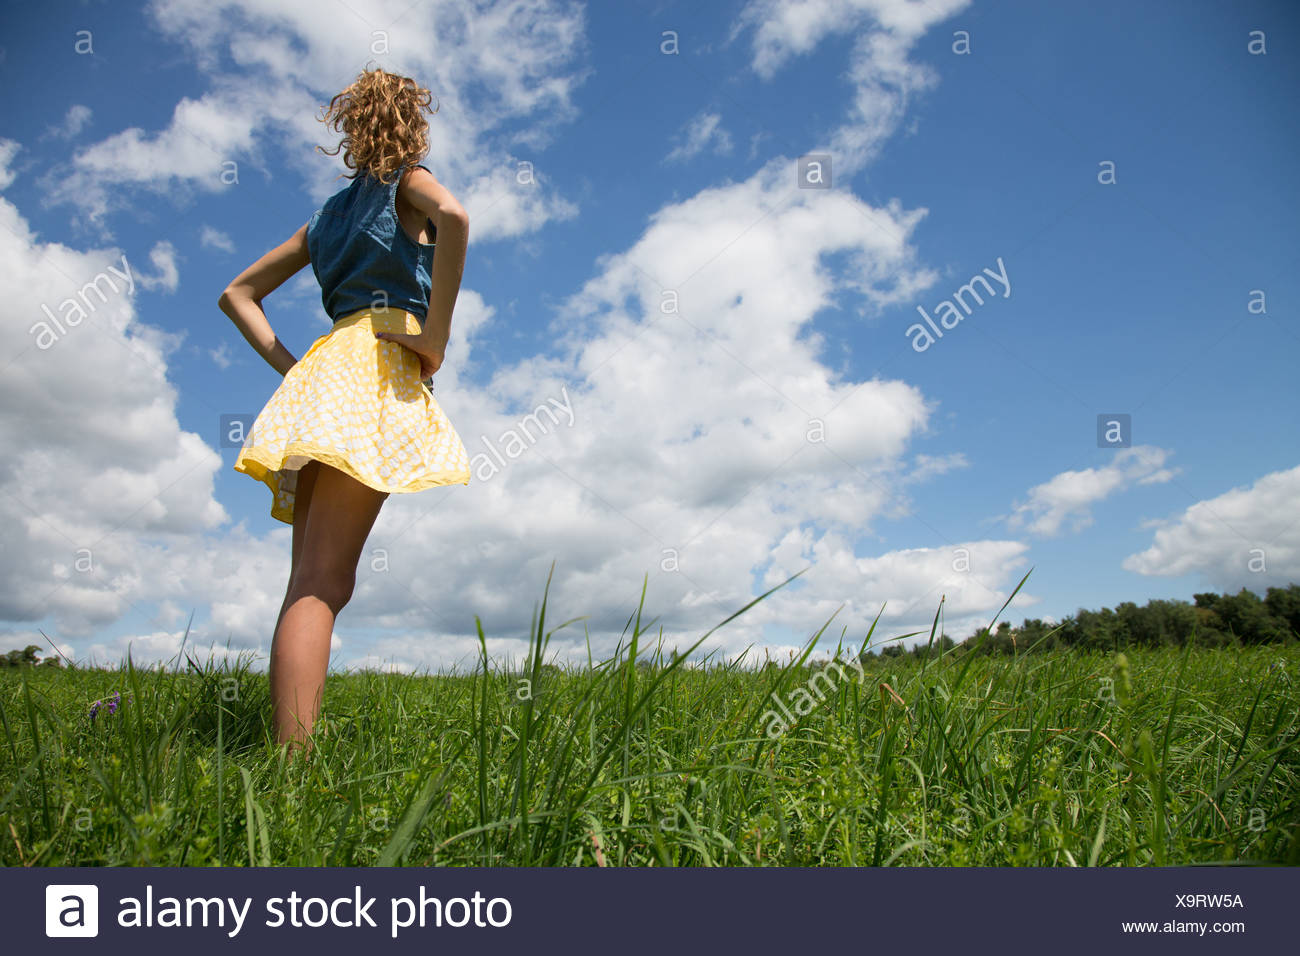 Teenage girl standing with hands on hips in field - Stock Image